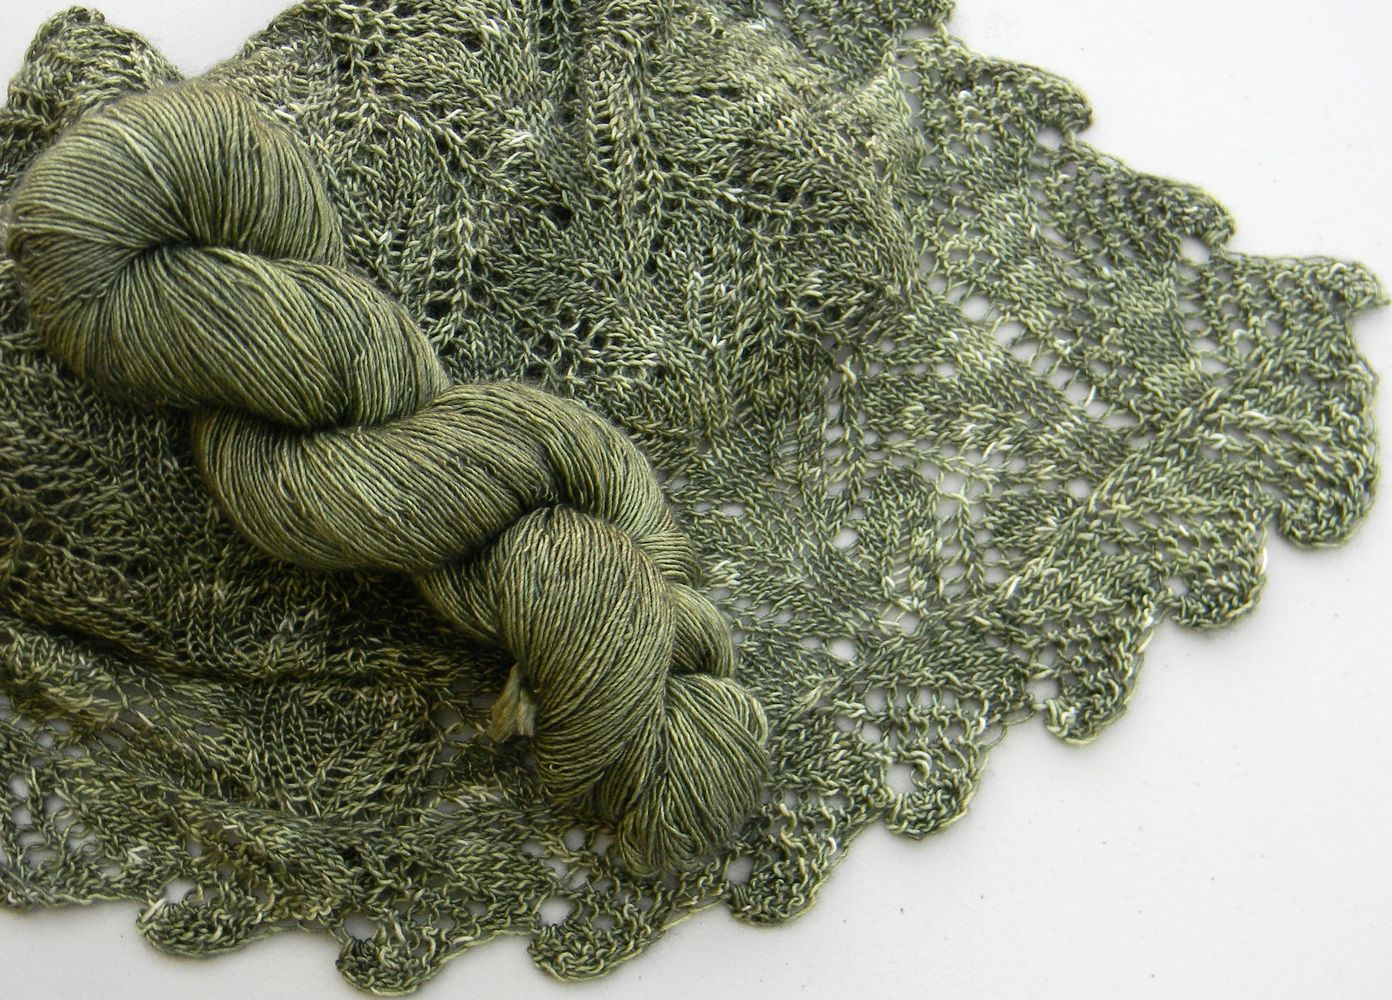 Ferndale Shawl - lace with knitted on lace edging shown in Old Money colorway on Twist Monkey base.